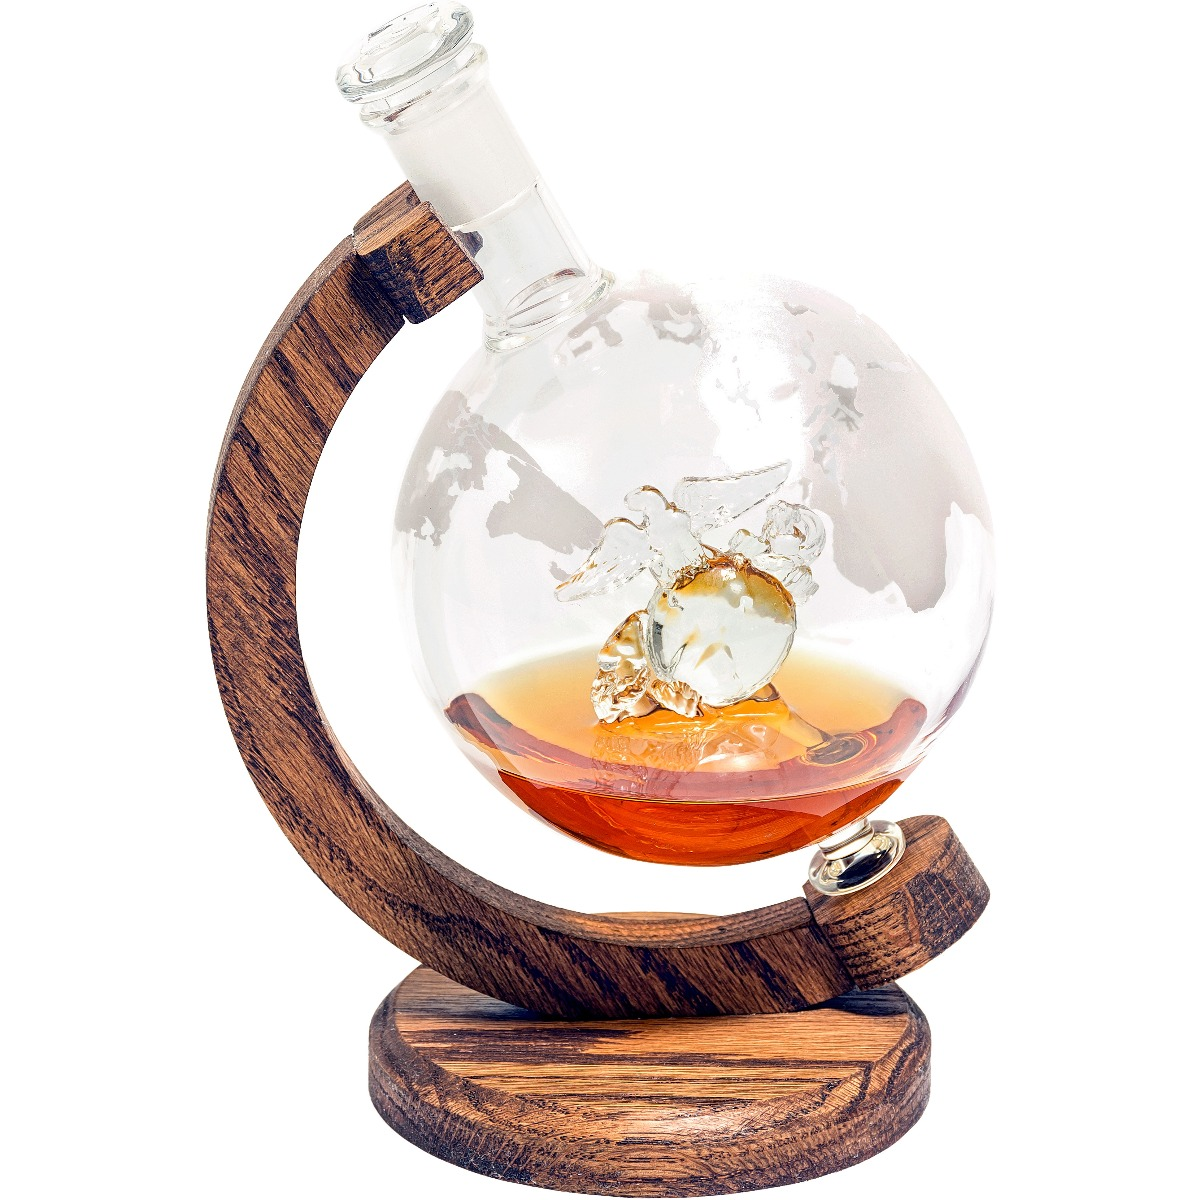 Eagle Globe and Anchor Marines decanter